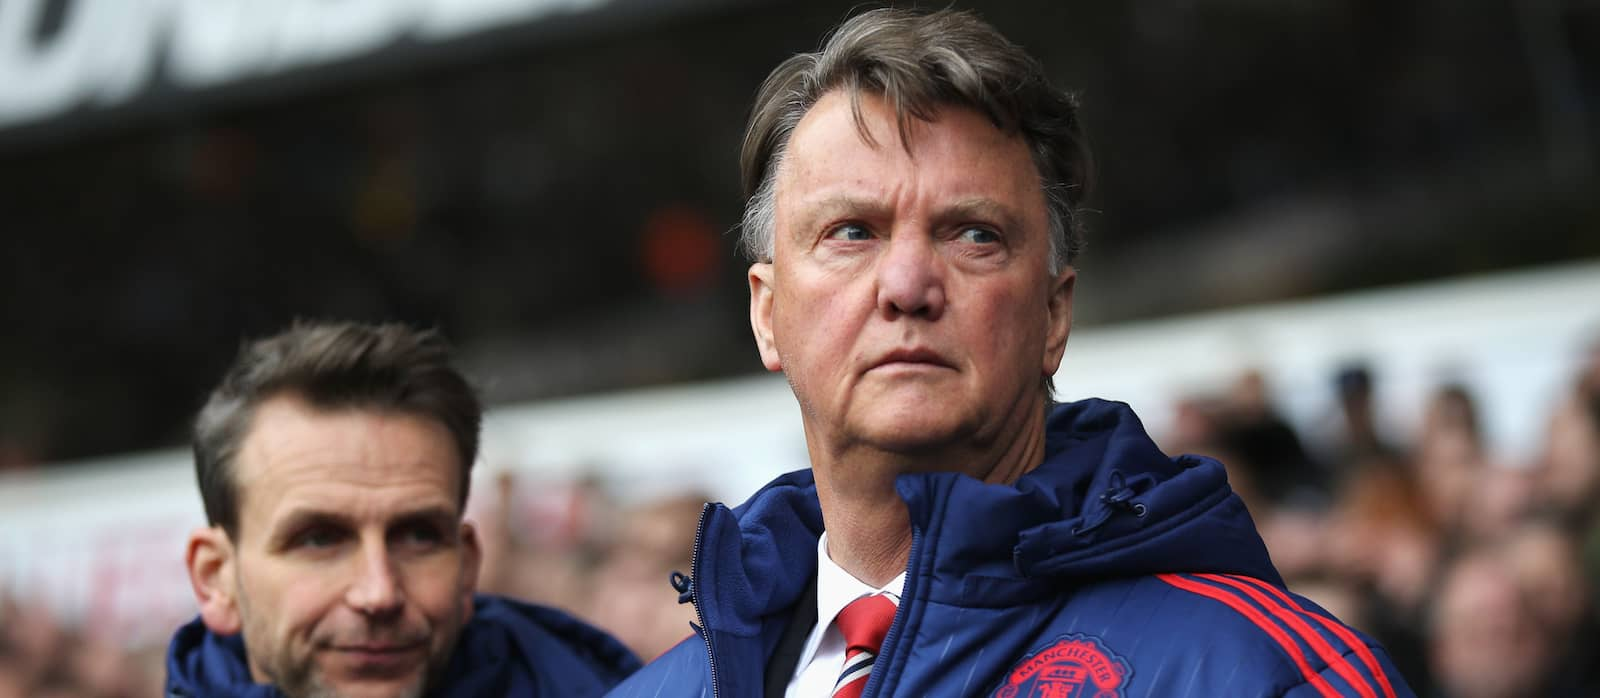 Louis van Gaal: Manchester United aiming to secure FA Cup title